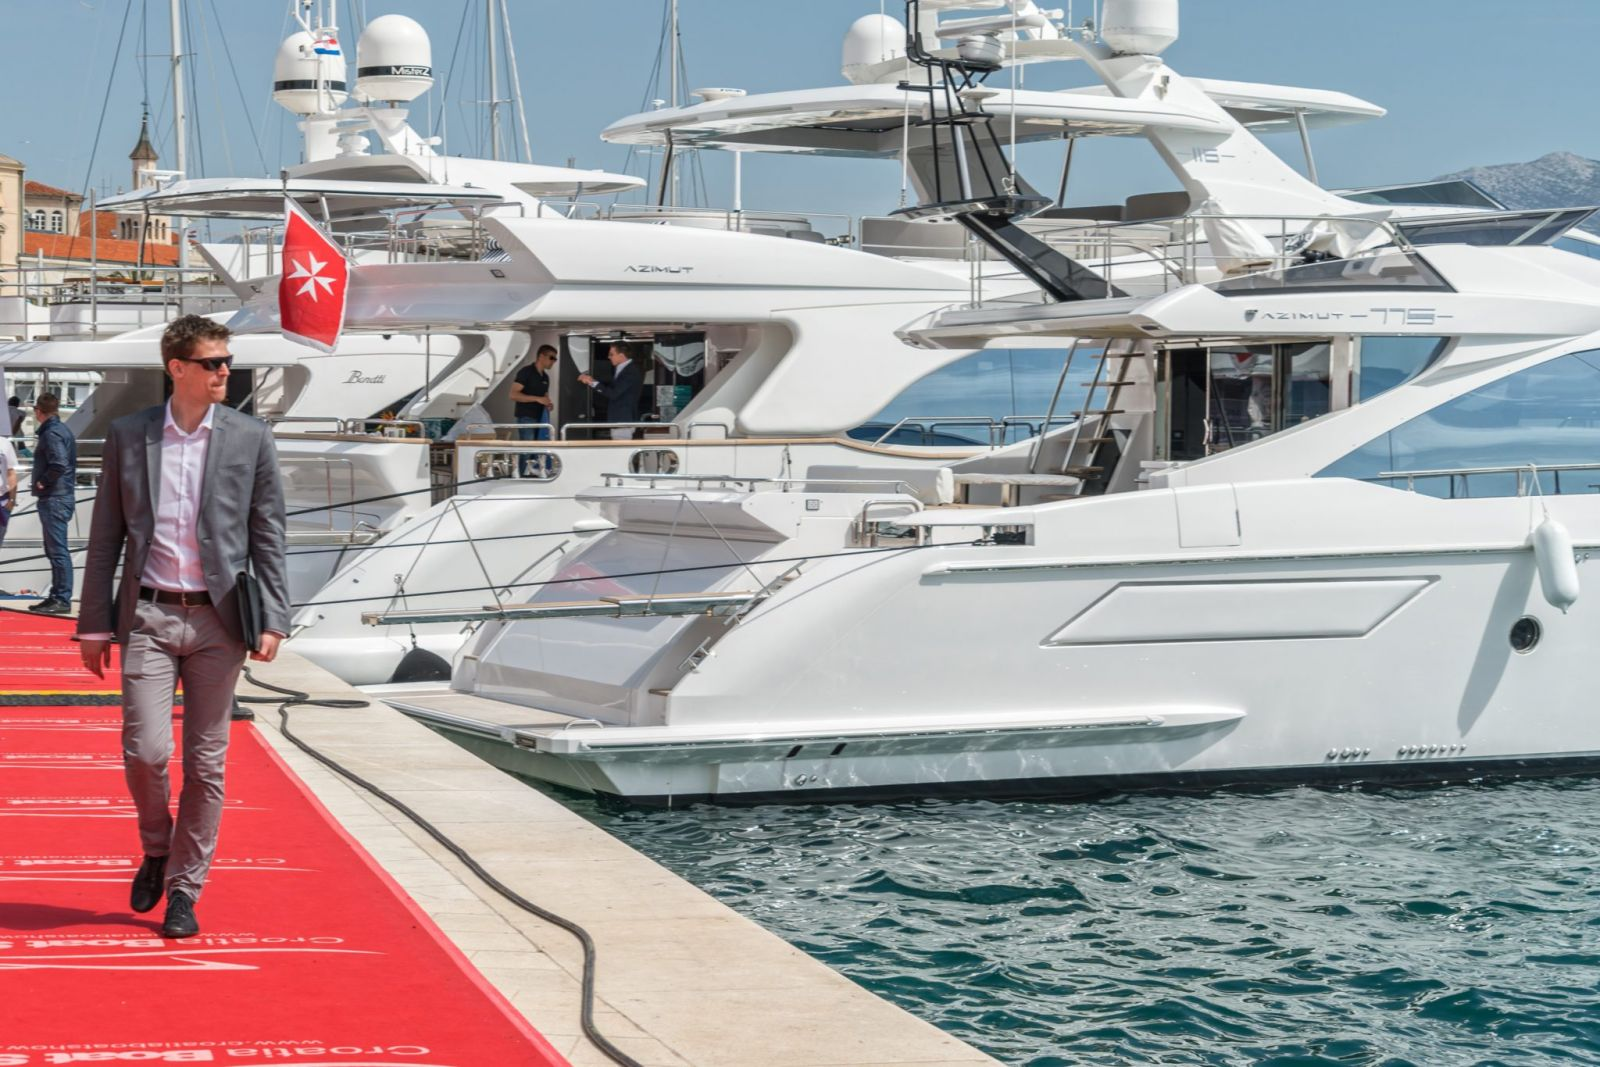 Croatia Boat Show 2018. yachts and boats PYI